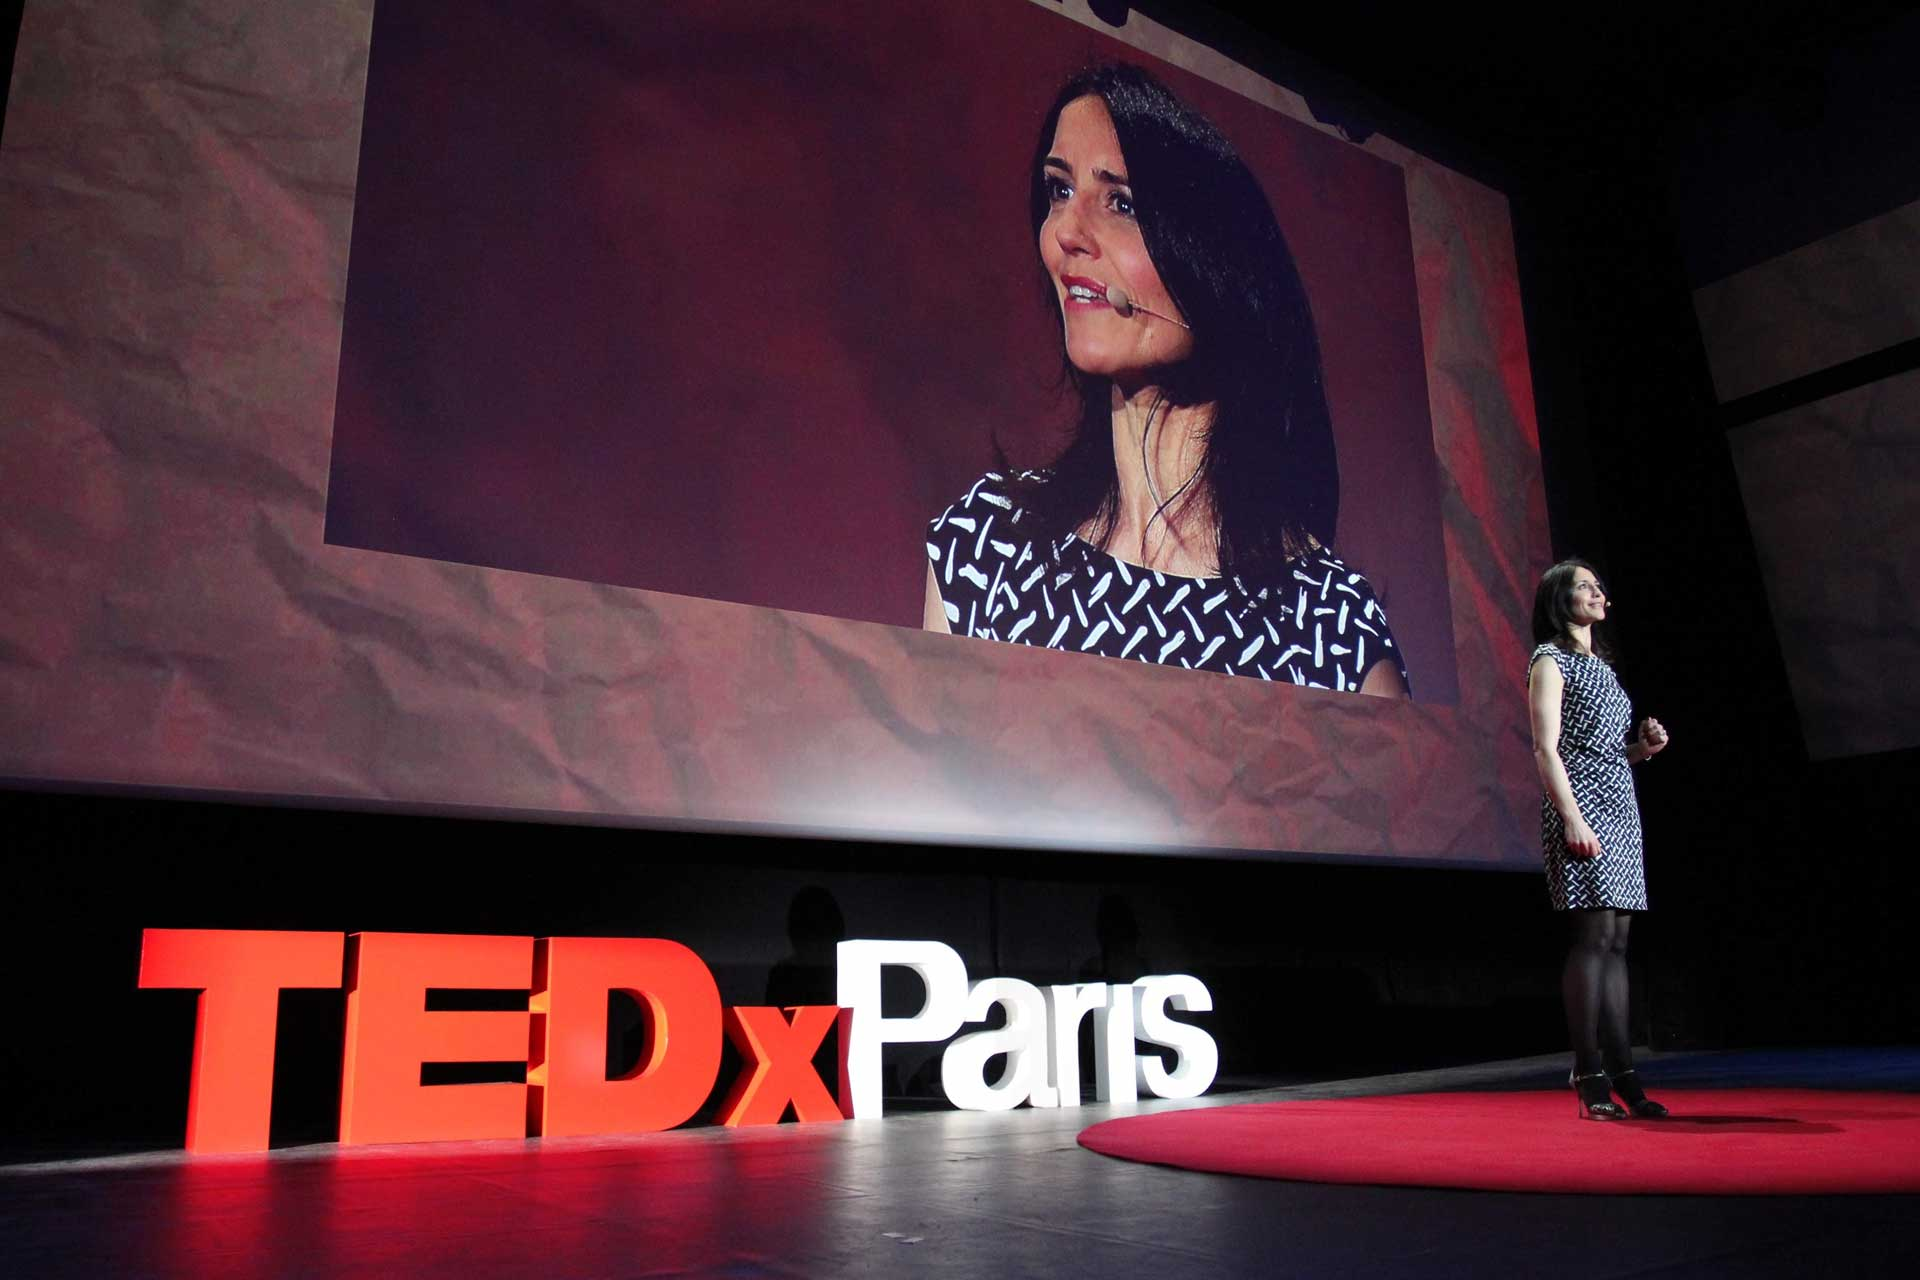 conference-TEDxParis-2013-5.jpg